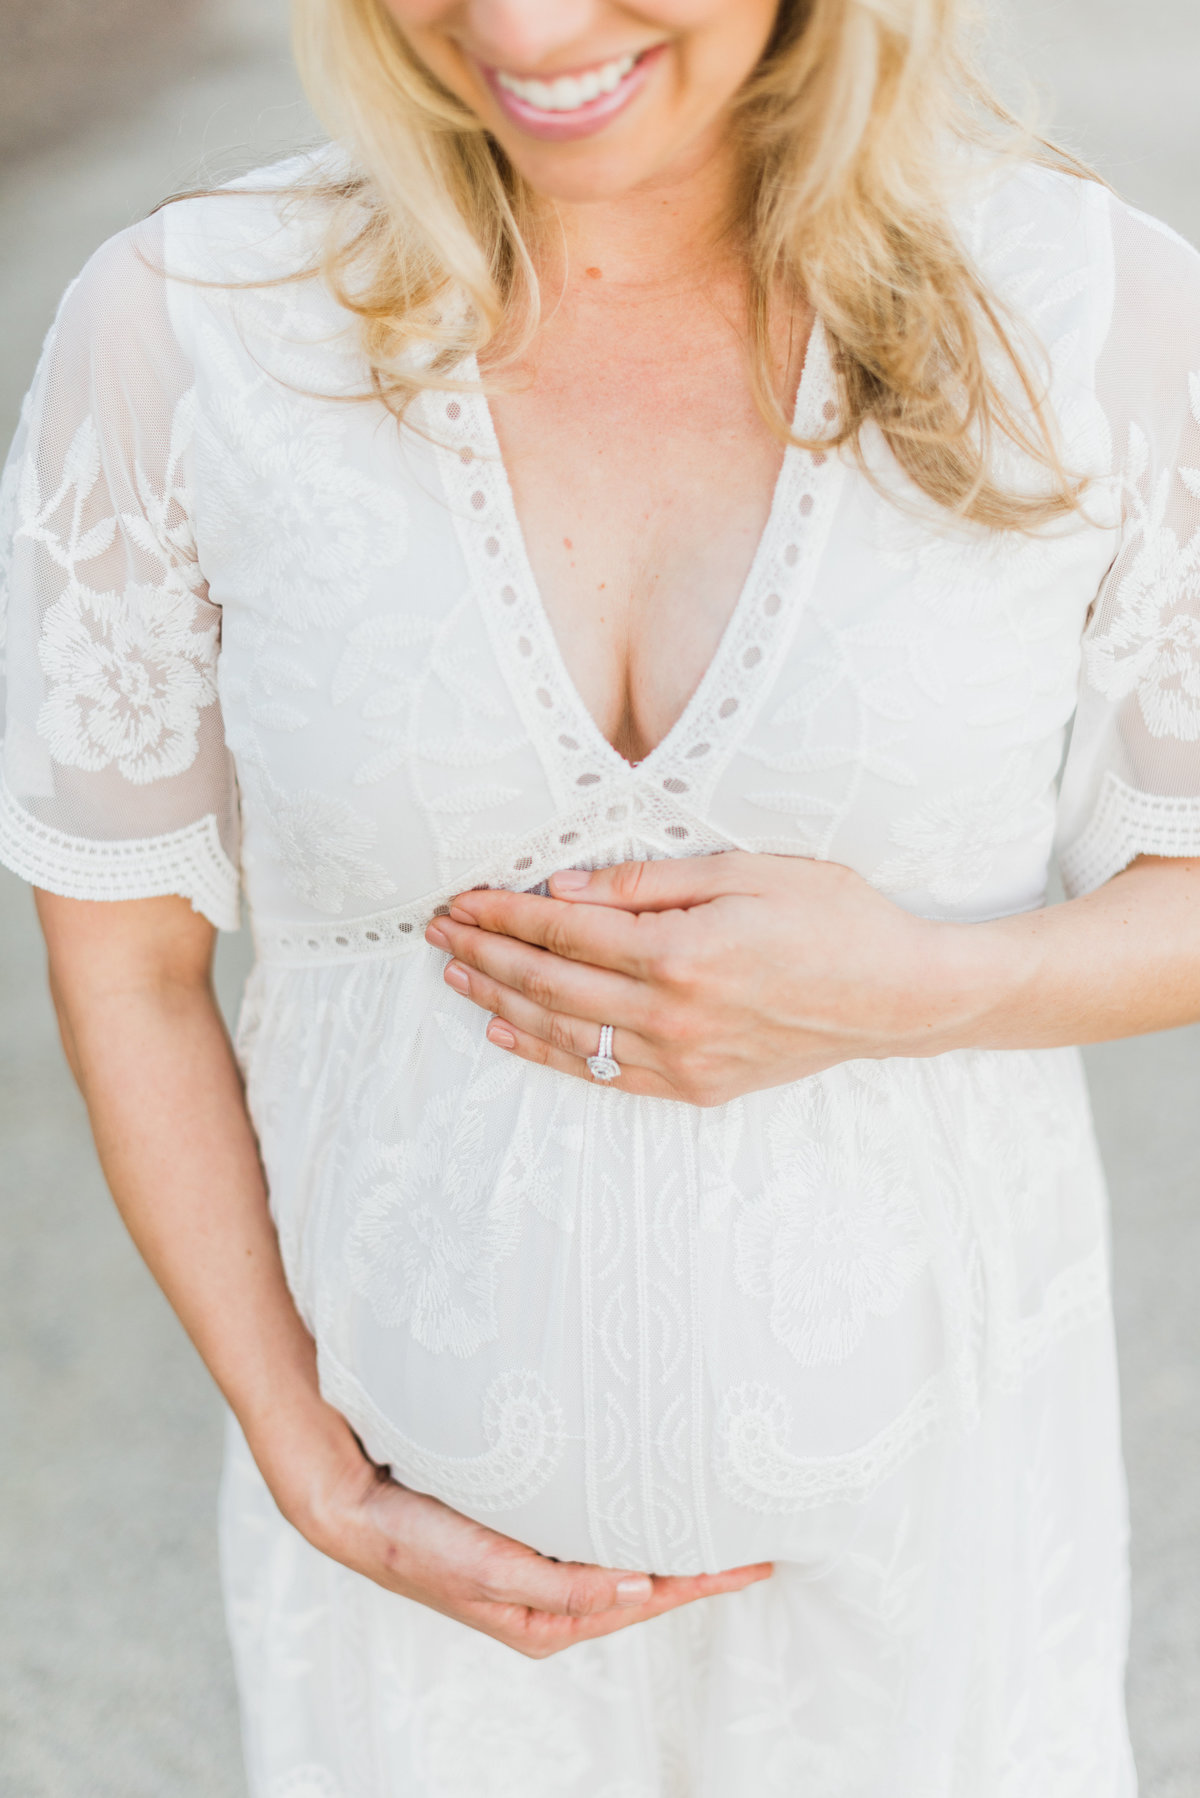 Orange County Maternity Session12